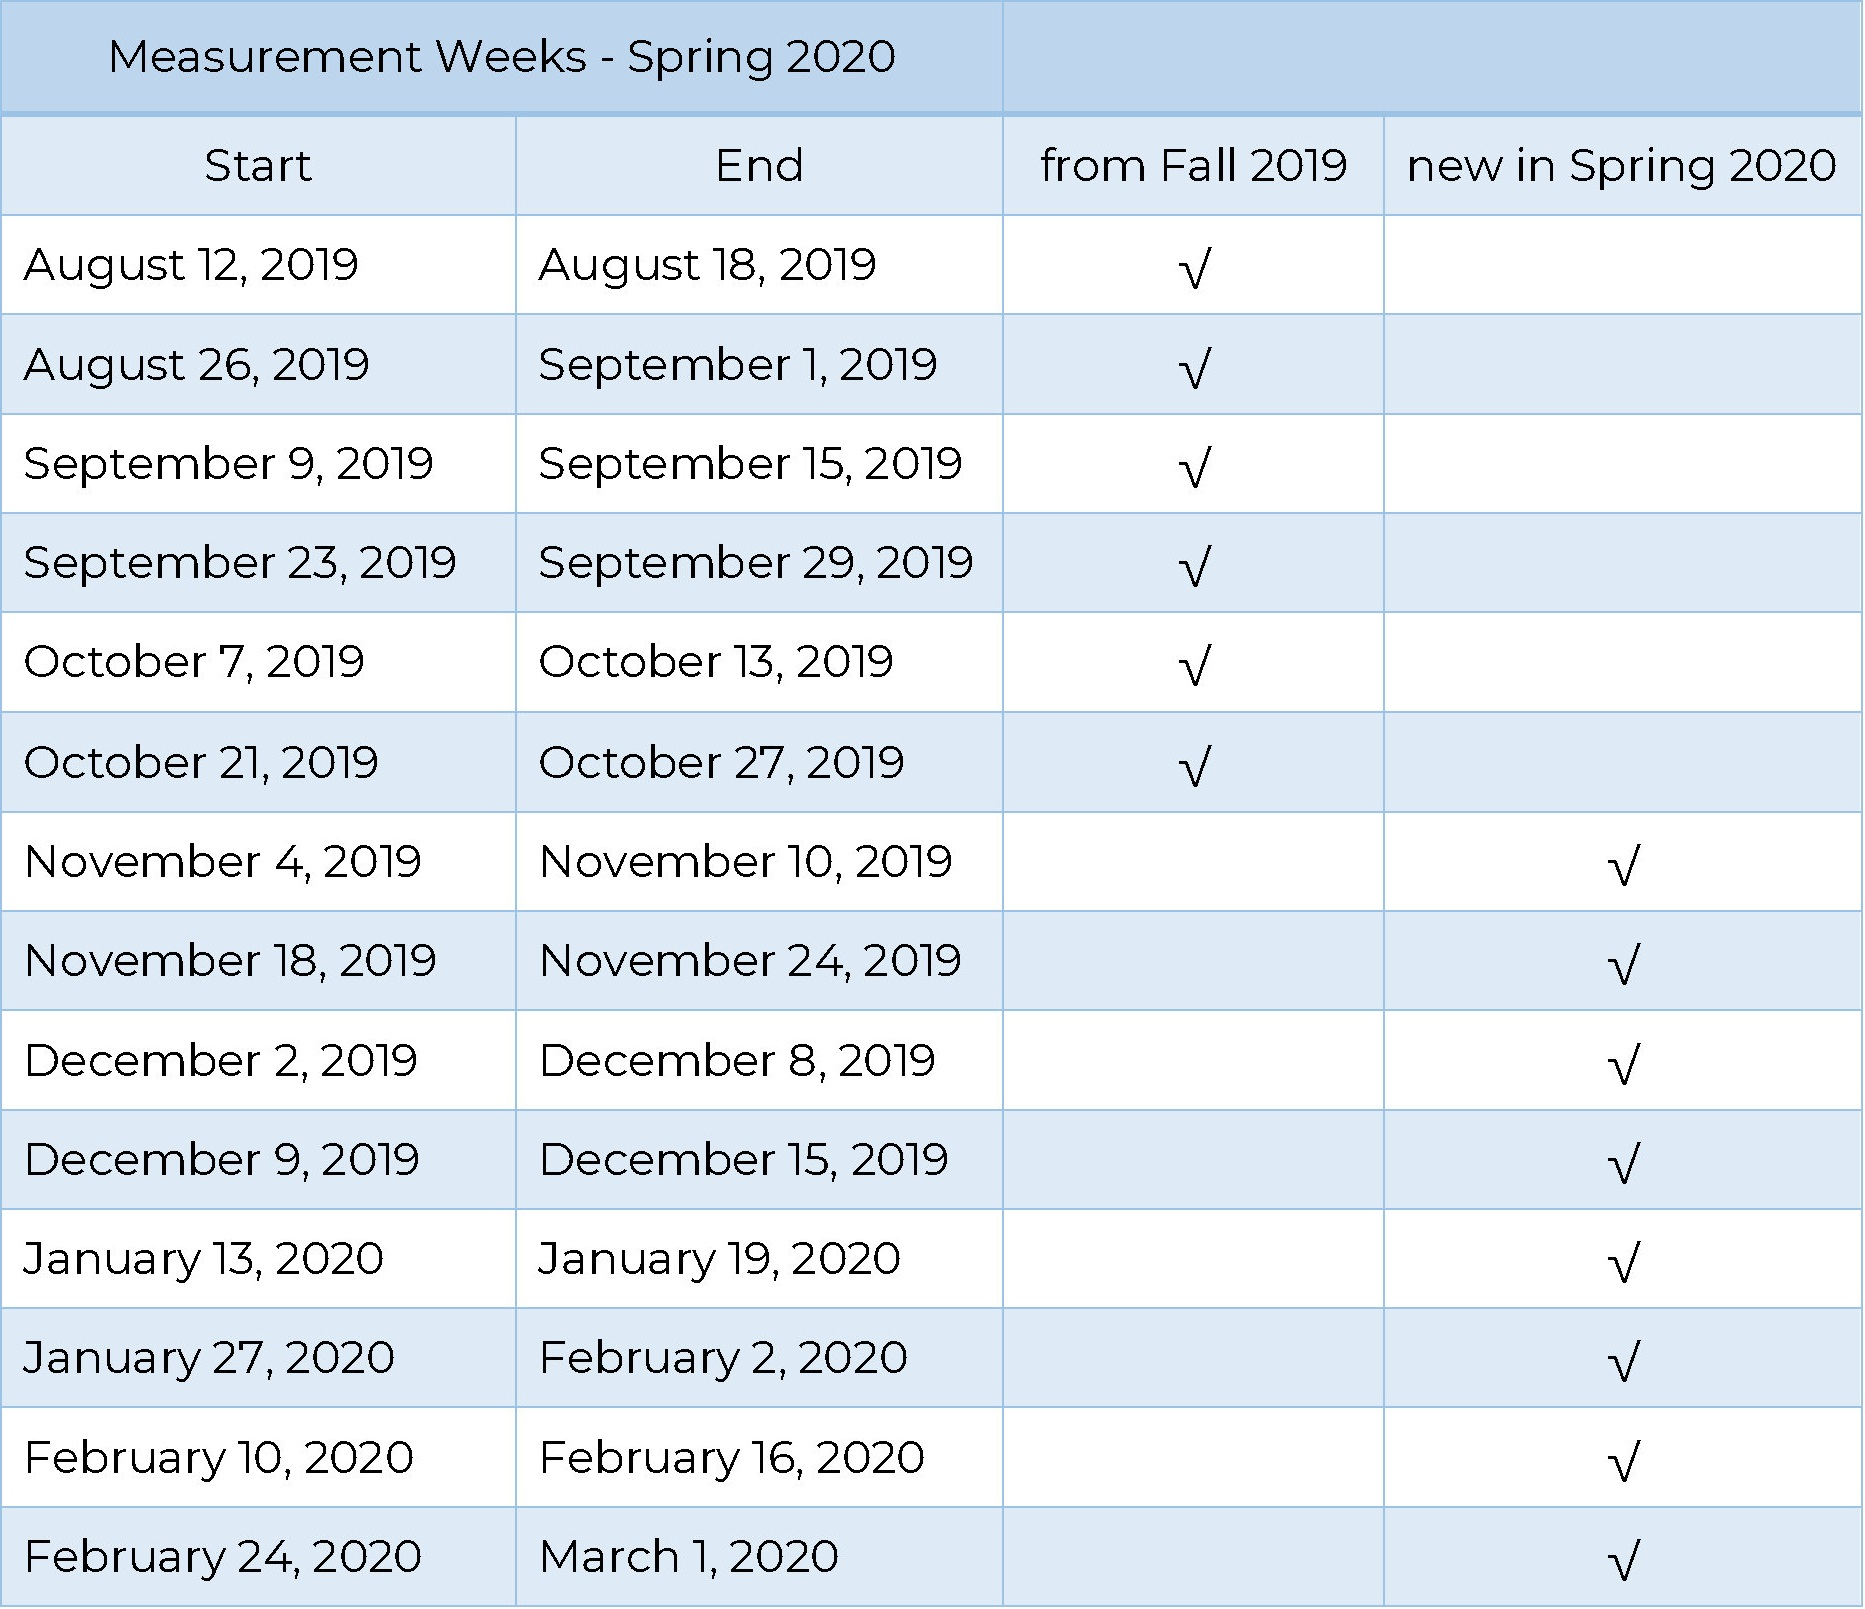 measument weeks spring 2020